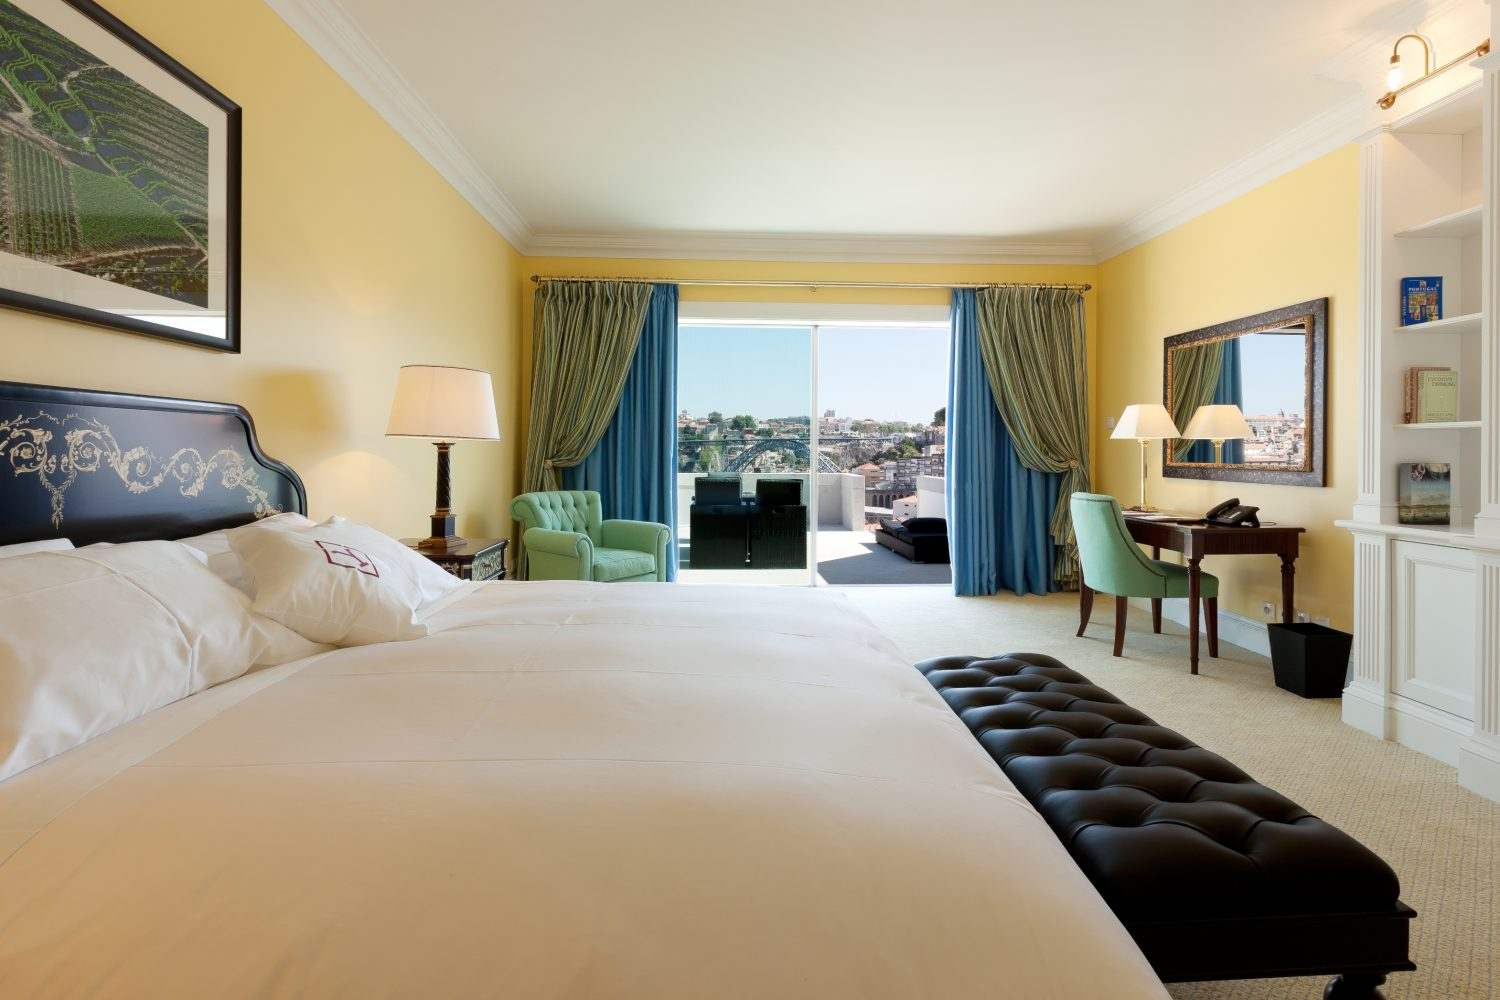 Superior Room at Yeatman Relais & Chateaux Hotel with view to Ponte Luis I